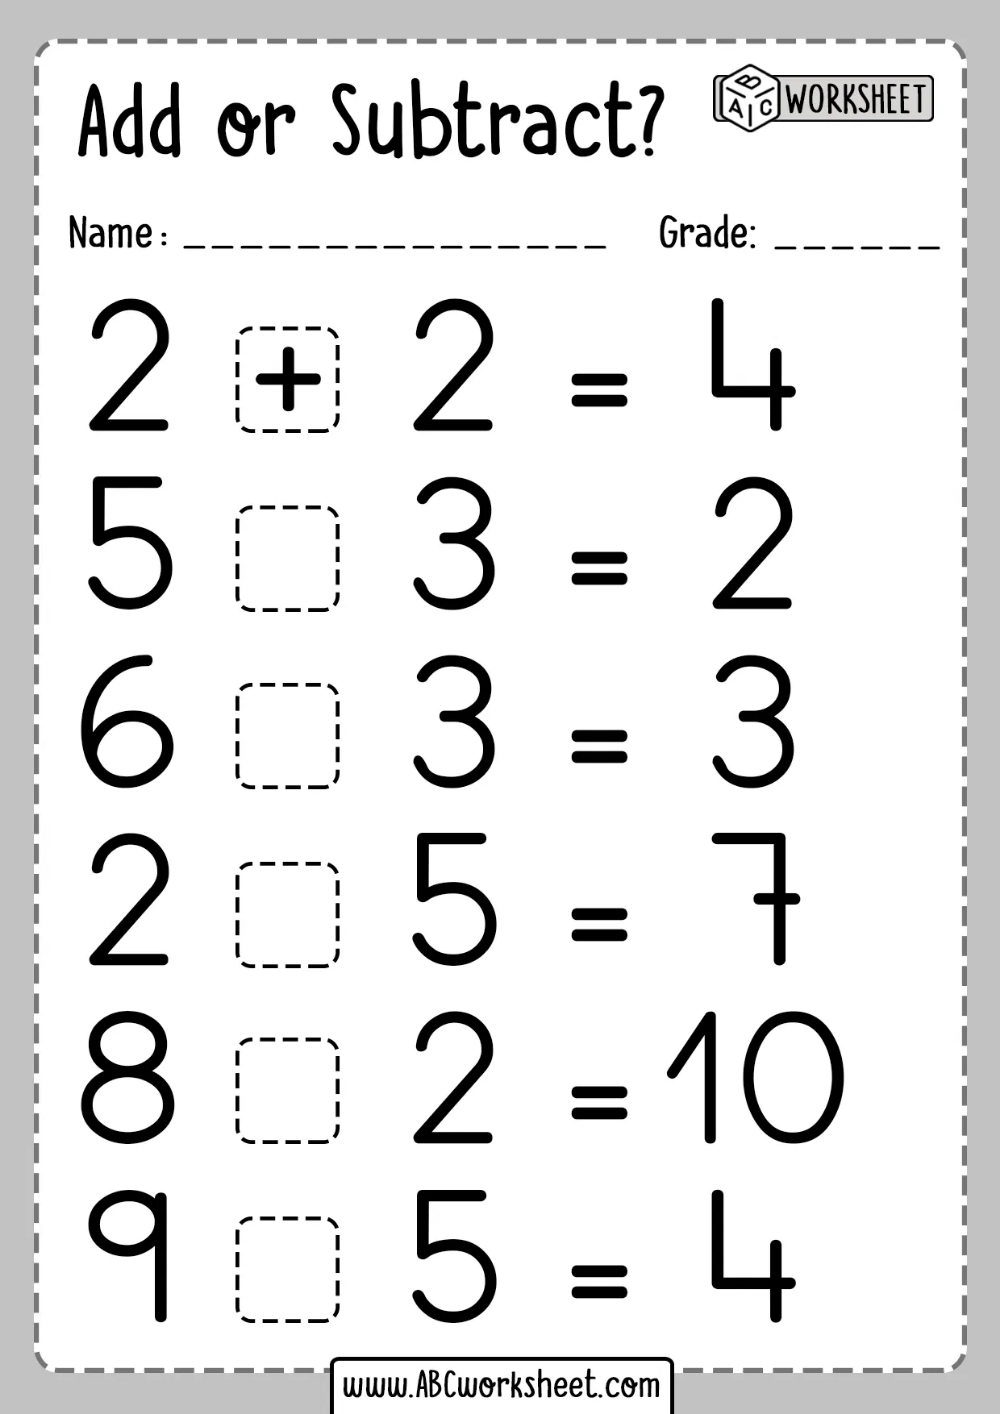 hight resolution of Addition and Subtraction worksheets   Addition and subtraction worksheets